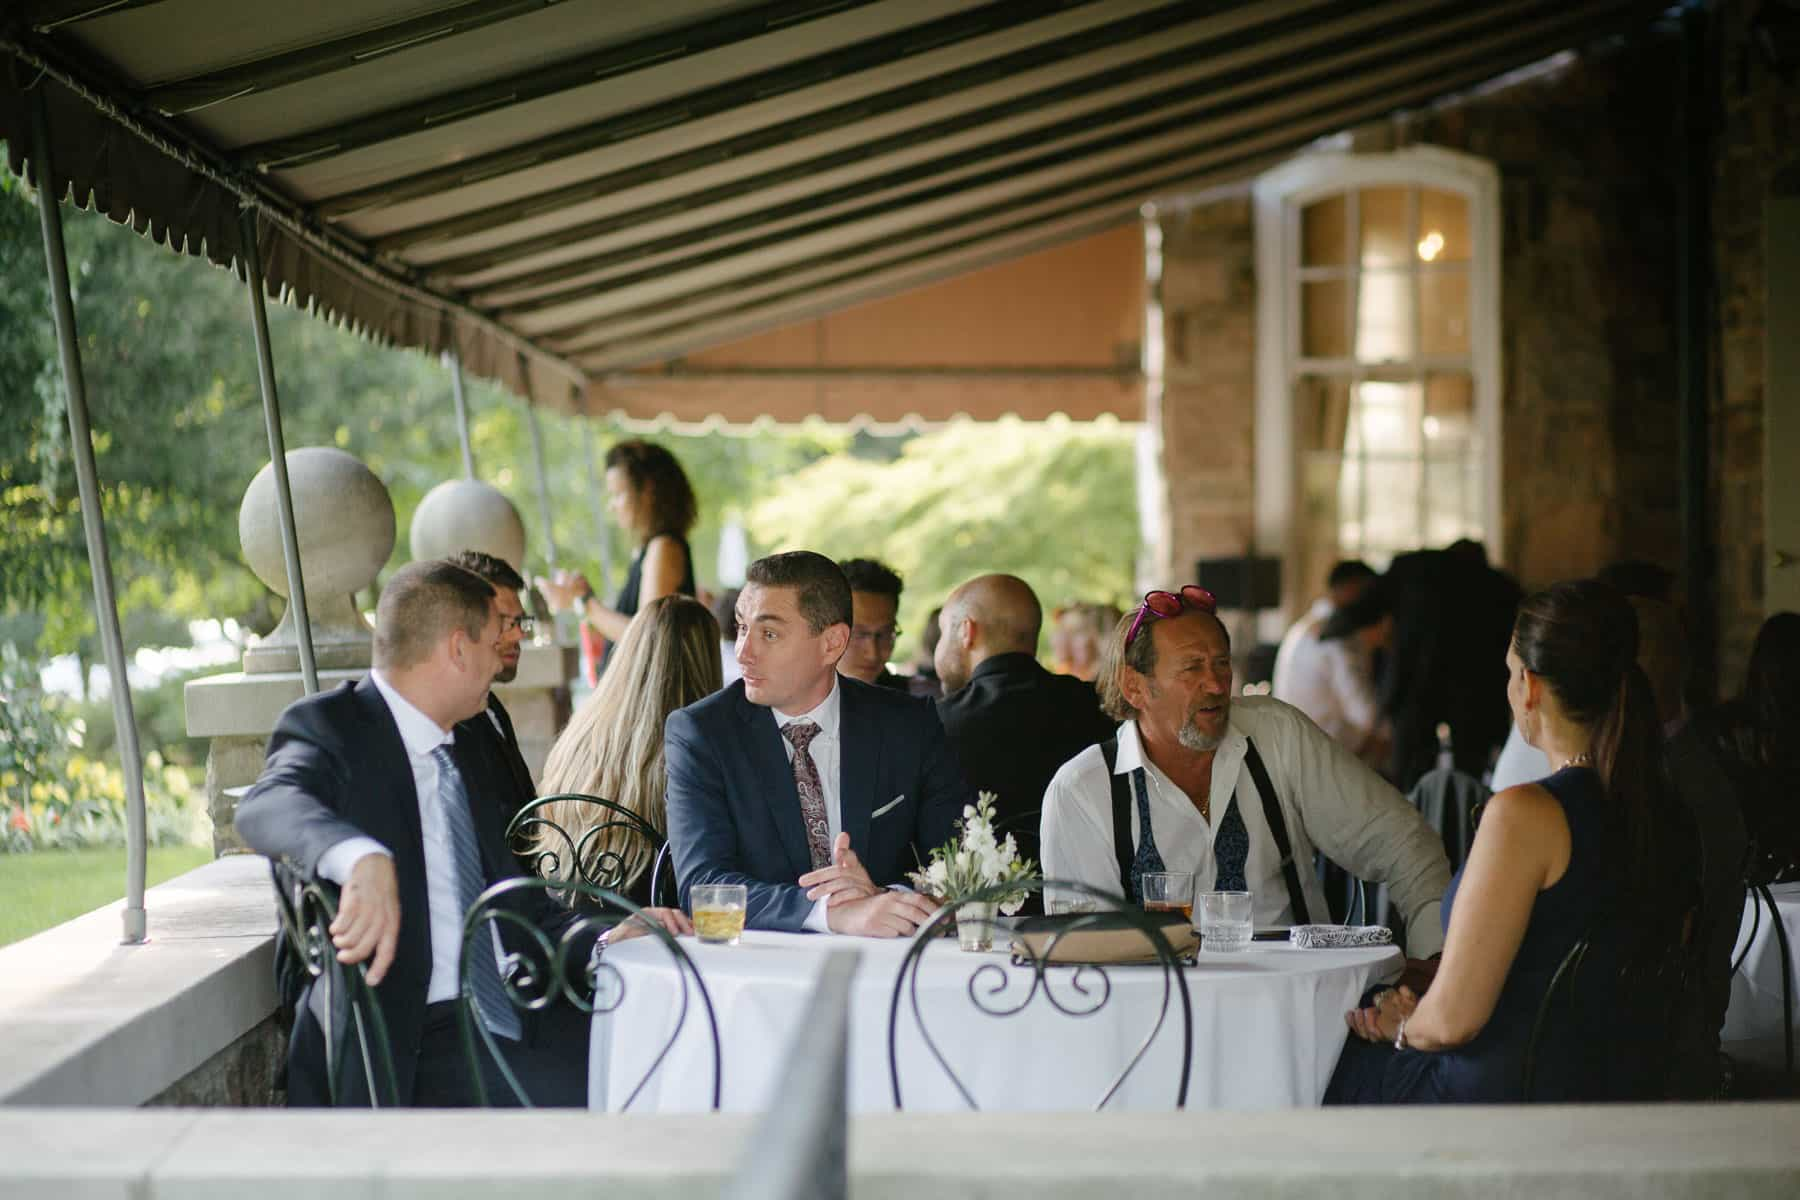 Wedding guests having a conversation around patio table at McClain House, Estates of Sunnybrook.